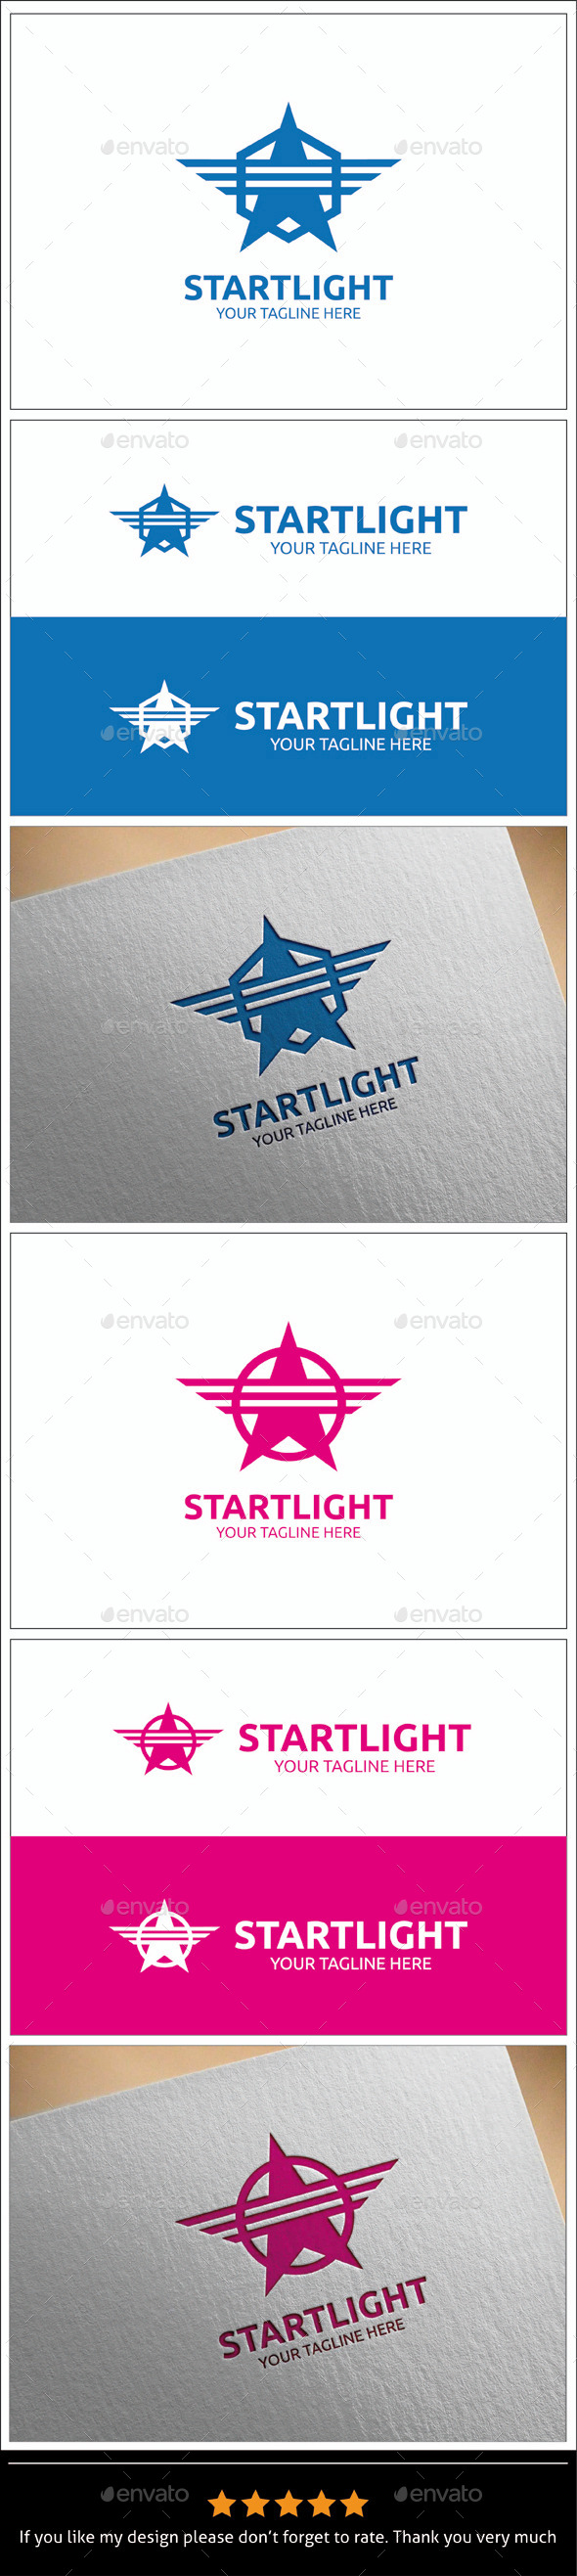 GraphicRiver Startlight Logo Templates 8896089